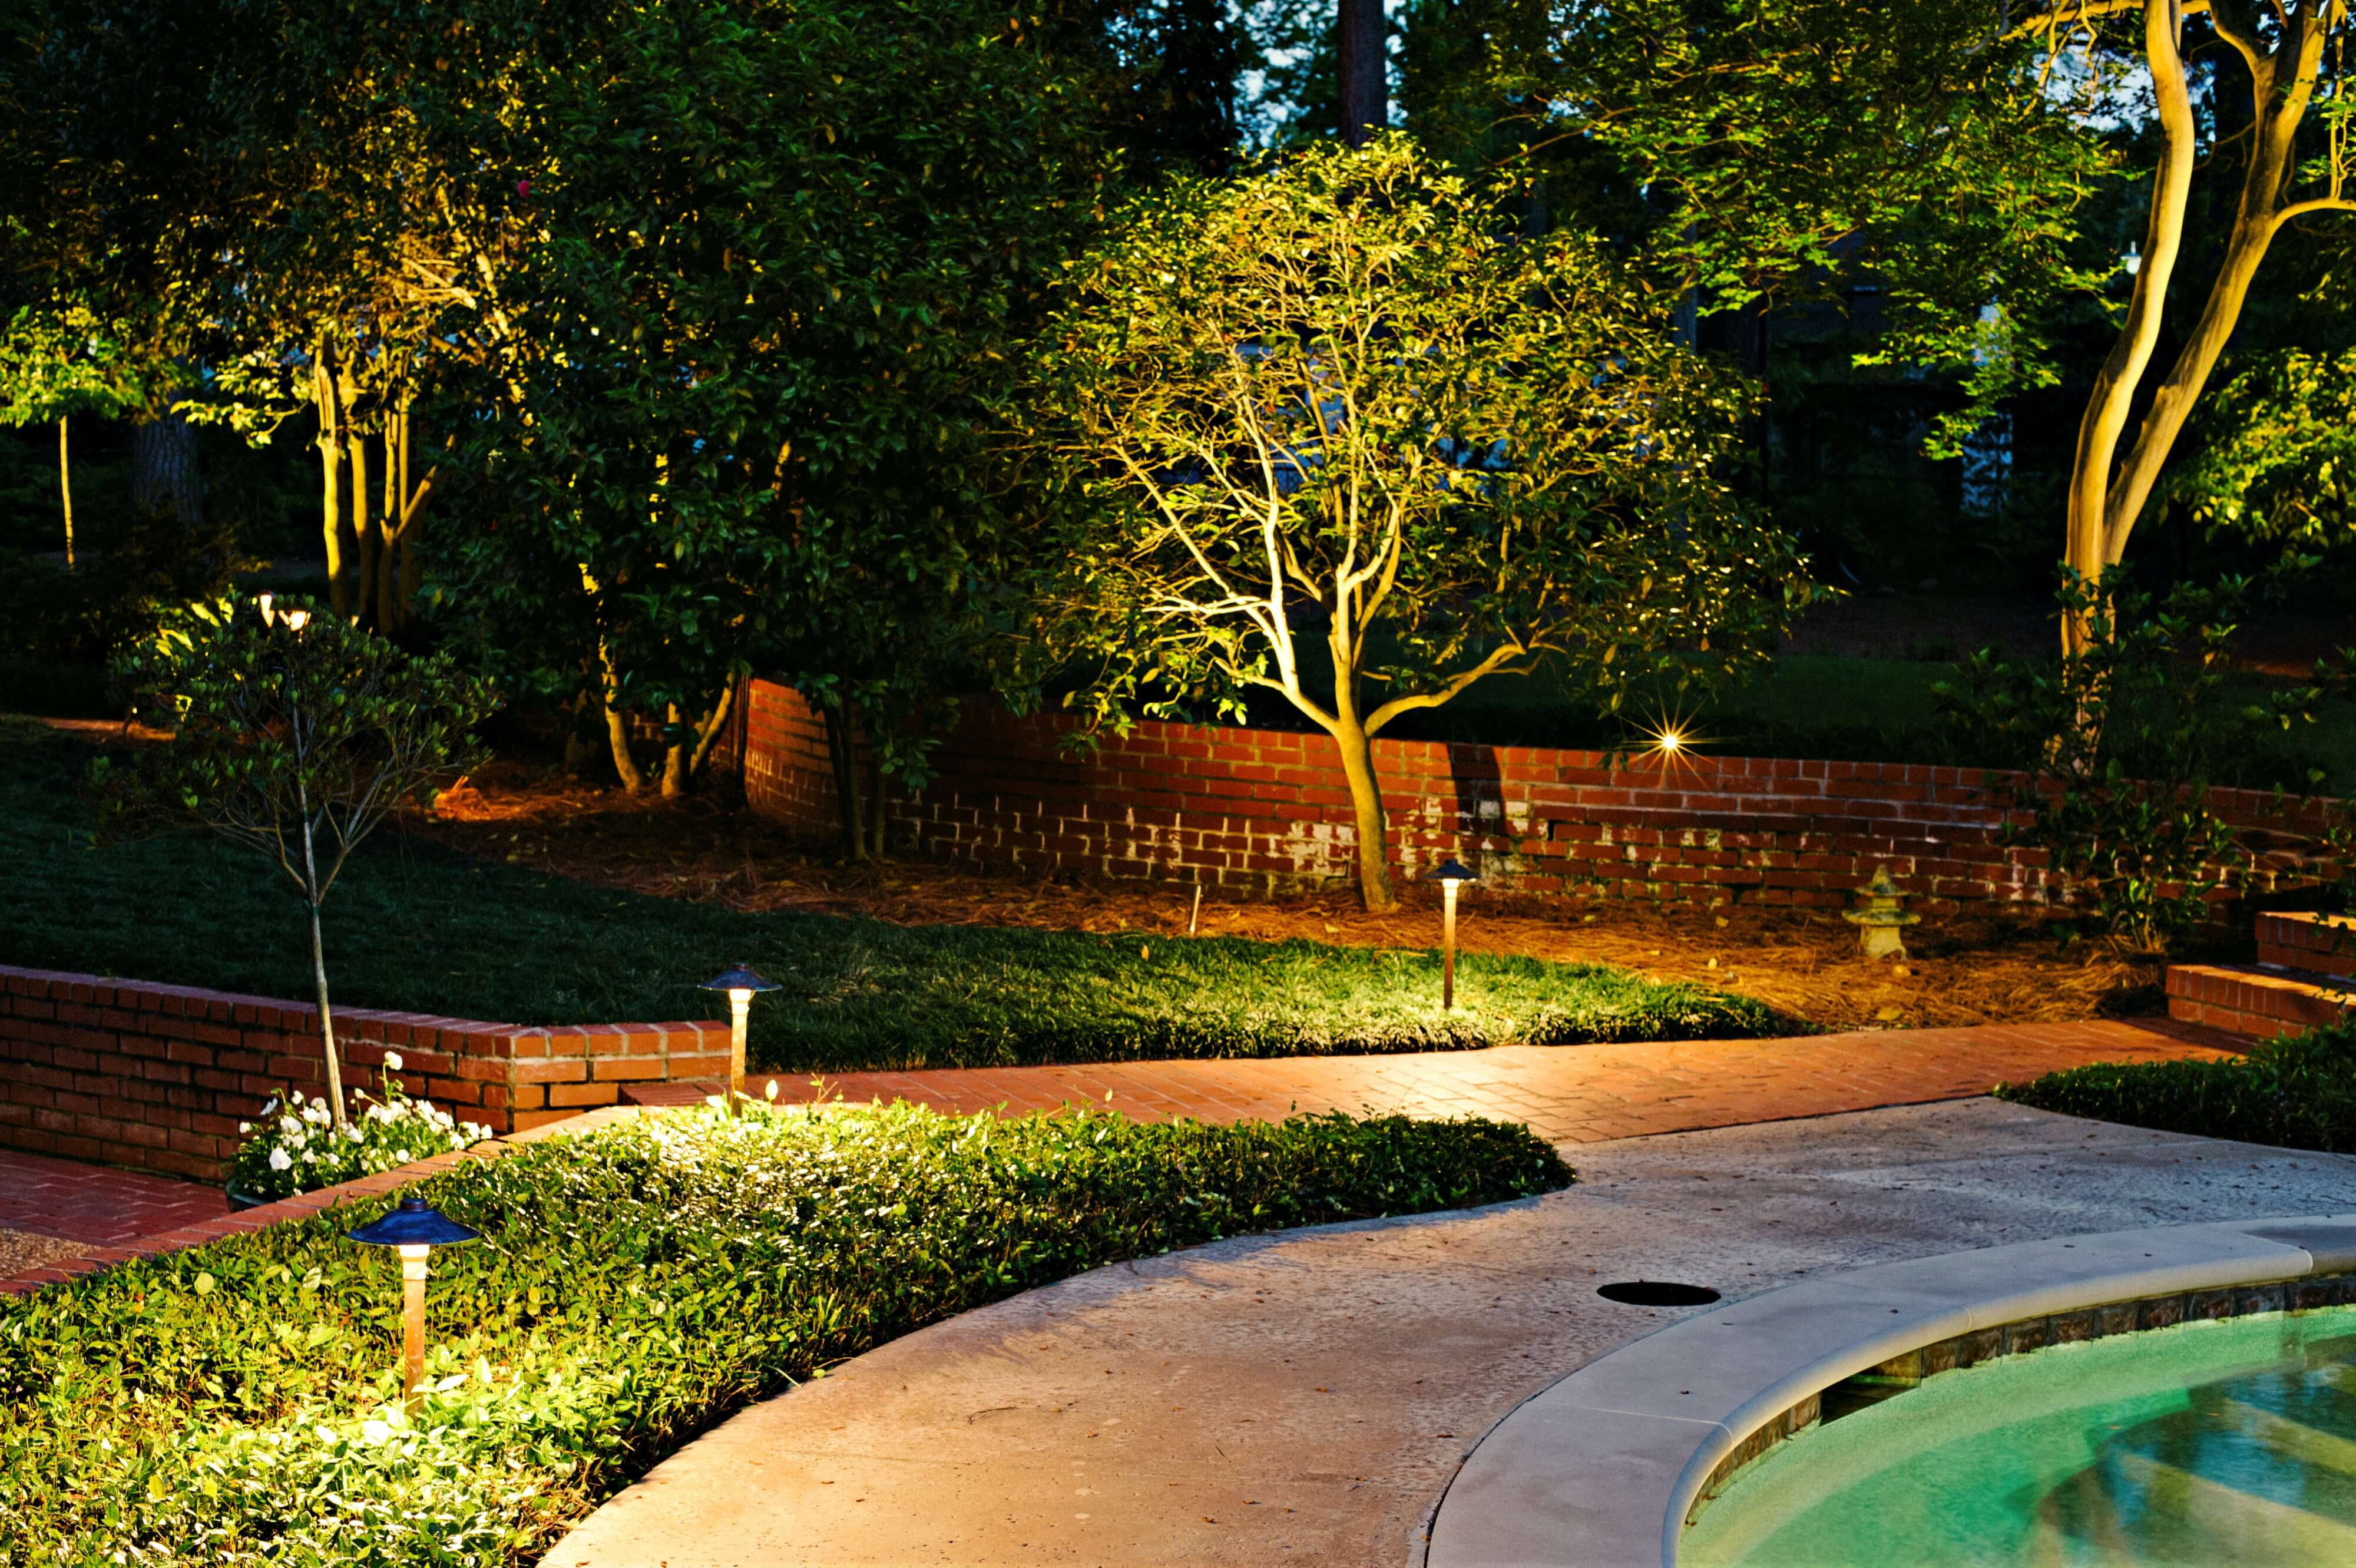 Lit walkway and landscaping